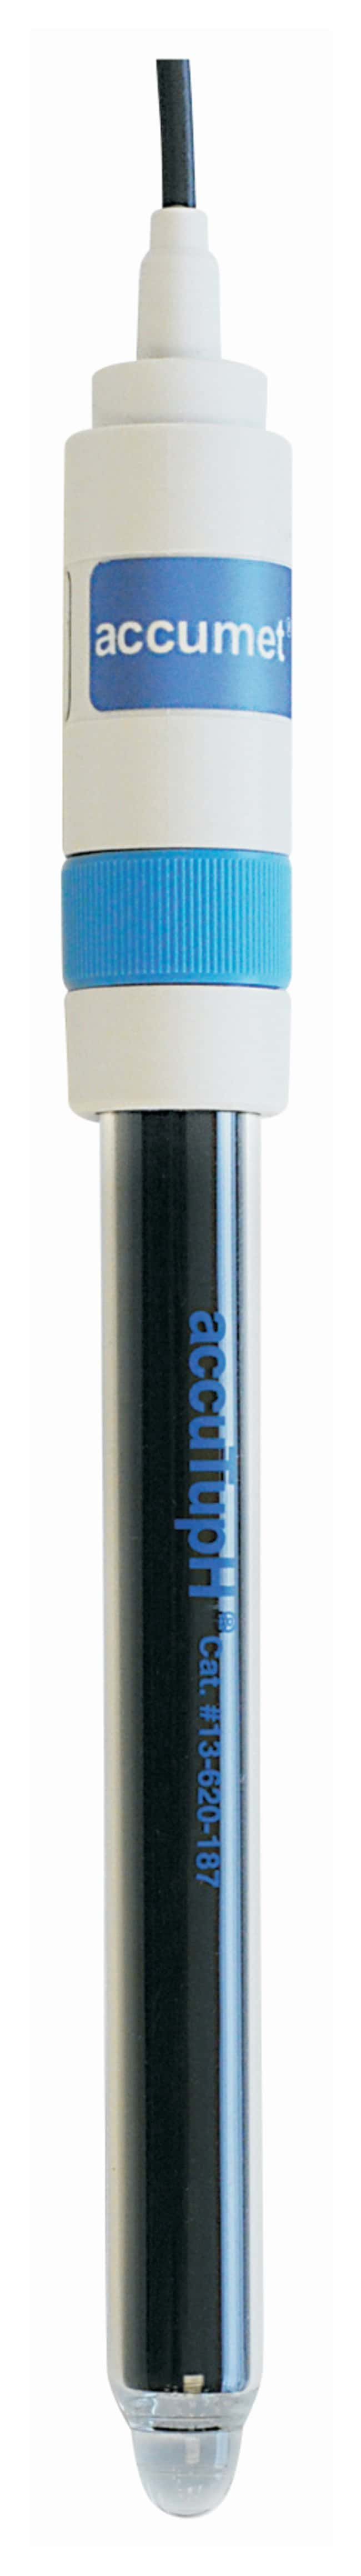 Fisherbrand accuTupH Rugged Bulb pH Indicating Electrode - Mercury - Free:Thermometers,